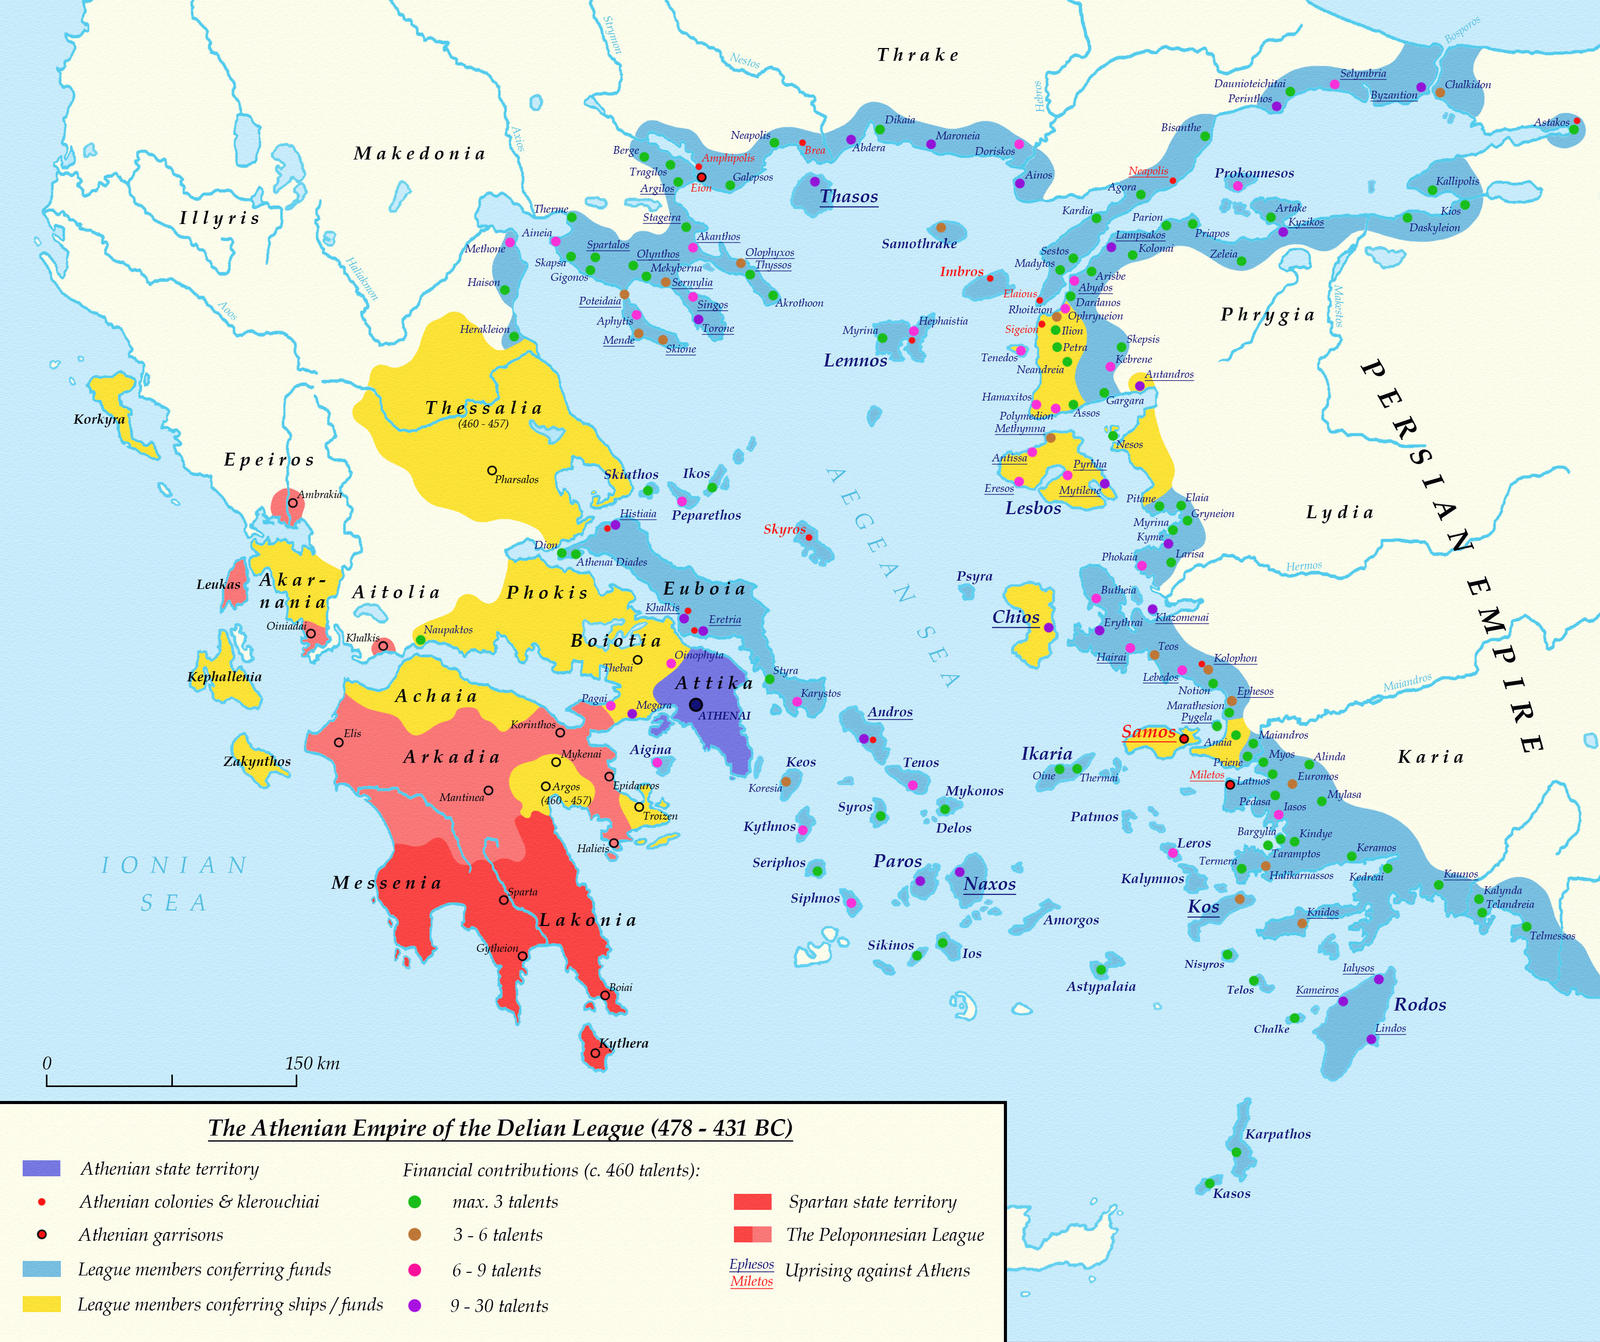 The Atenian Empire of The Delian League, 478 - 431 BC